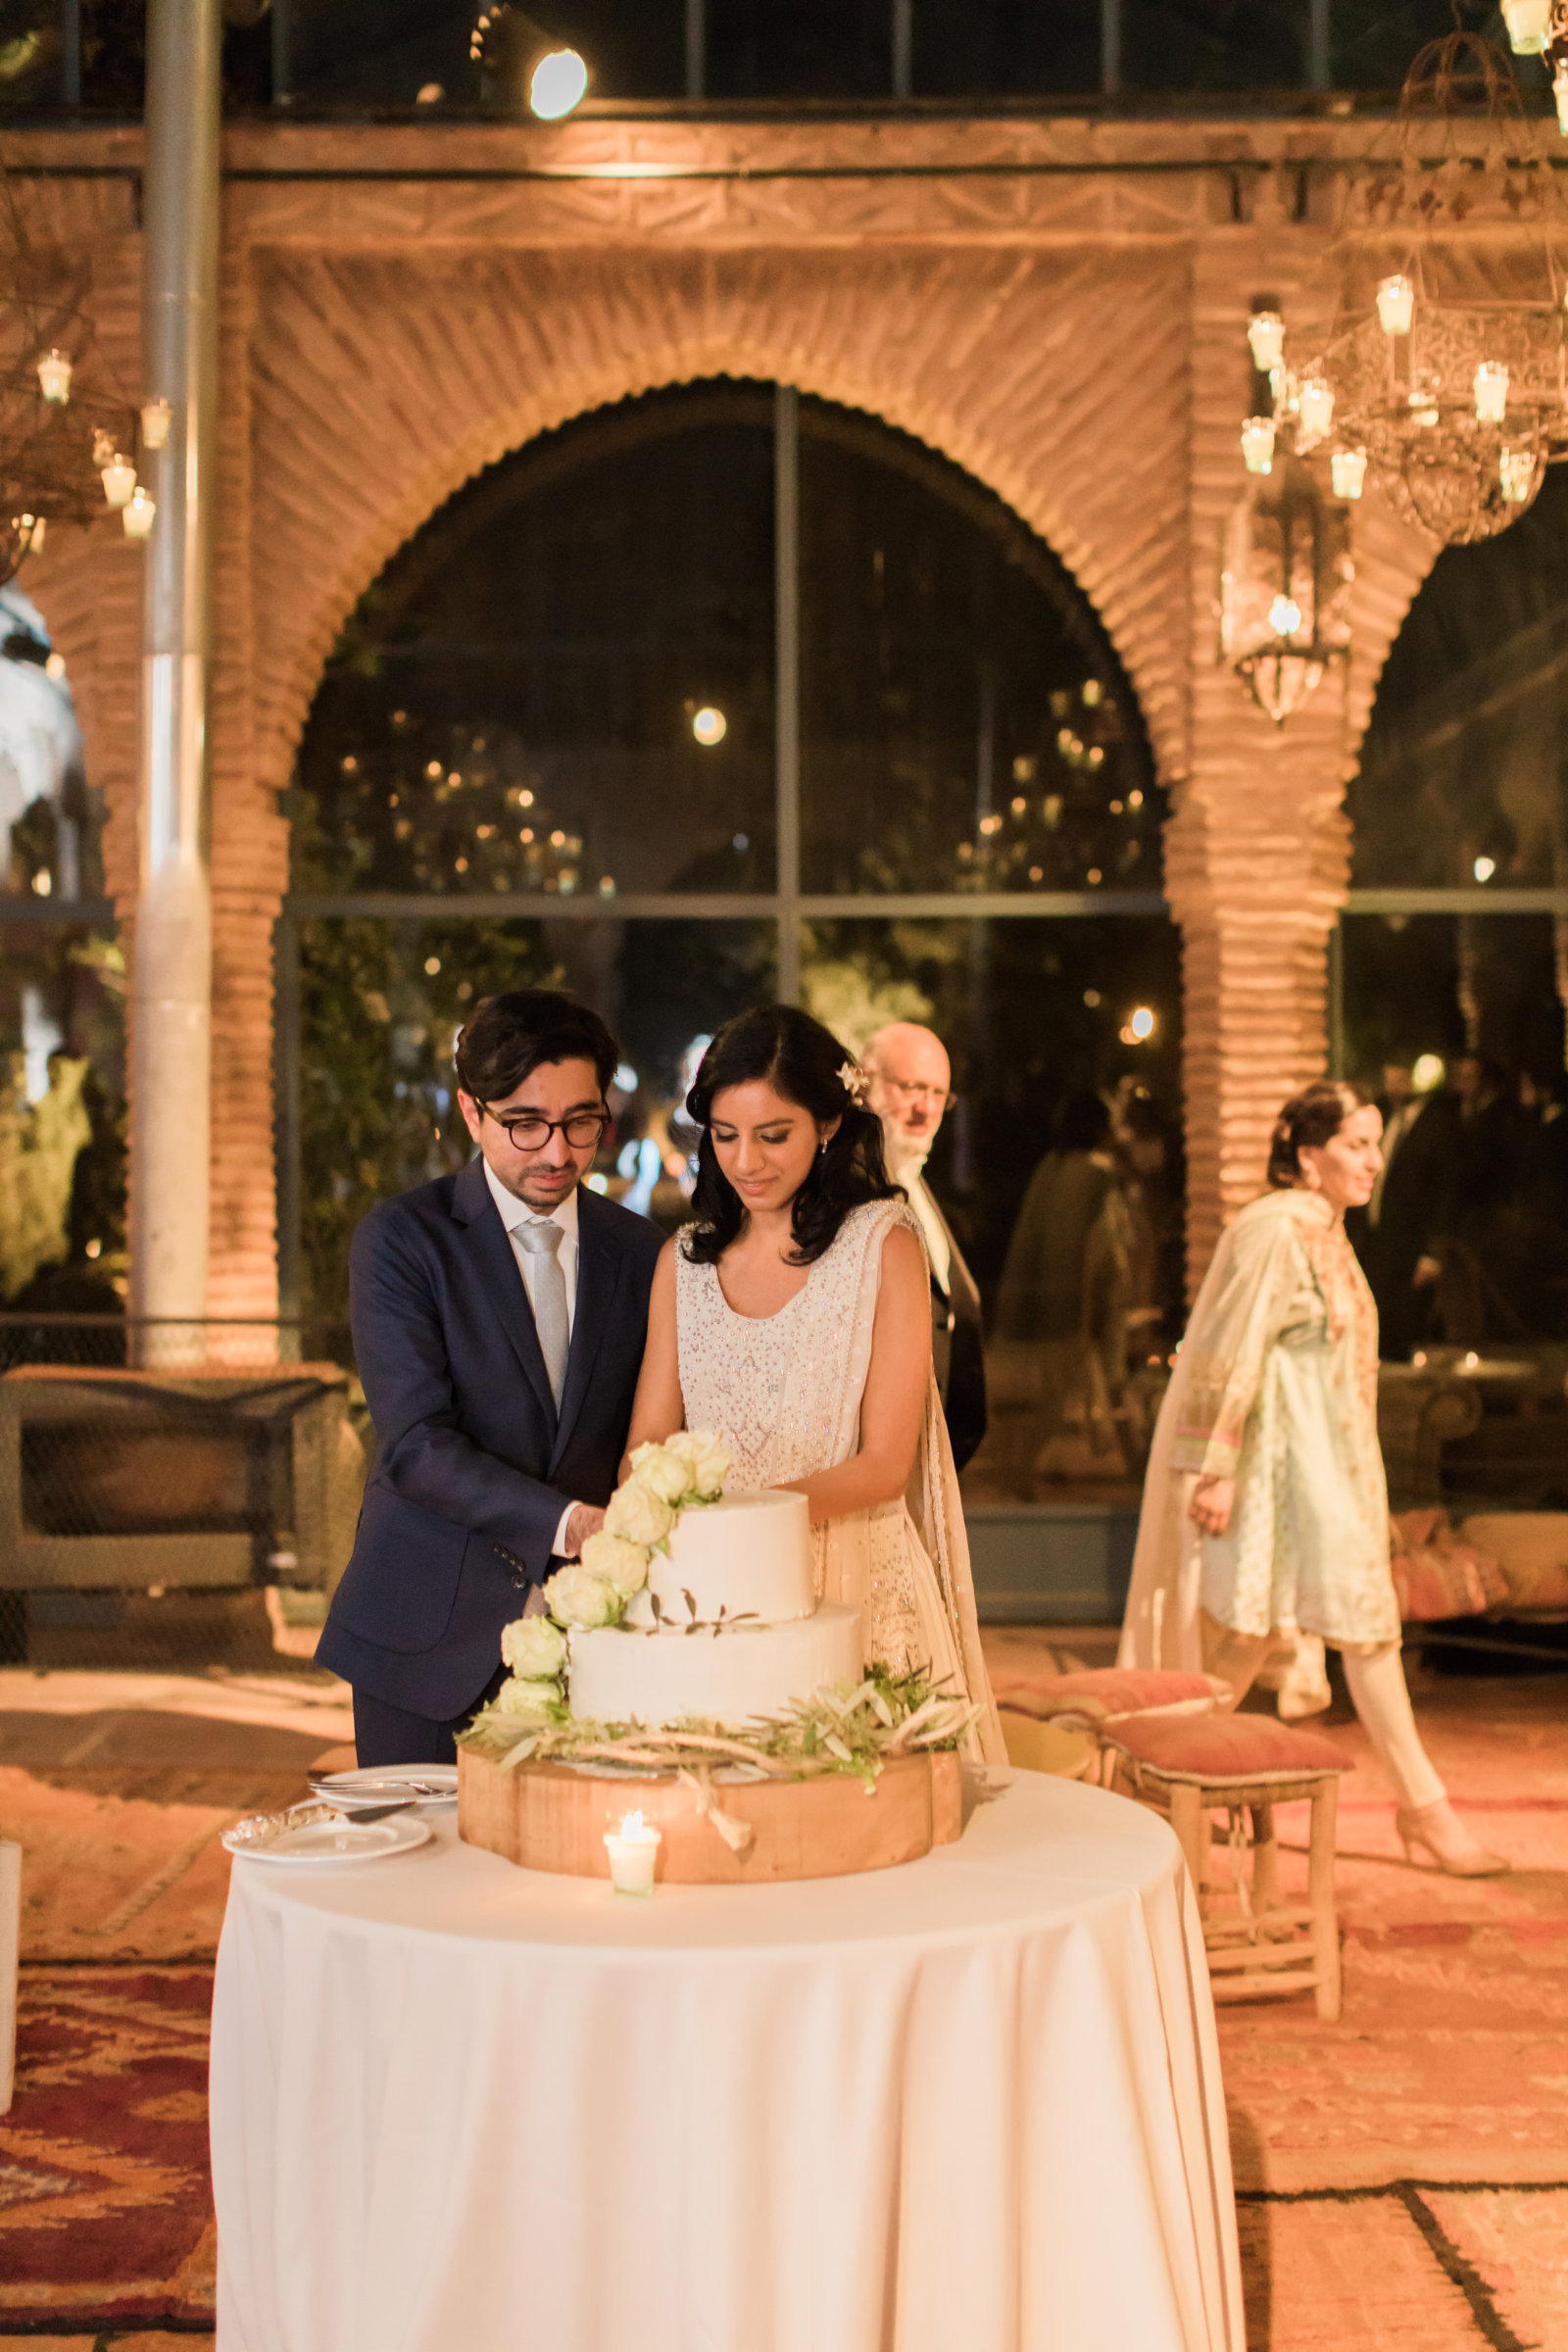 mariaraophotography_marrakechwedding-1142 web.jpg